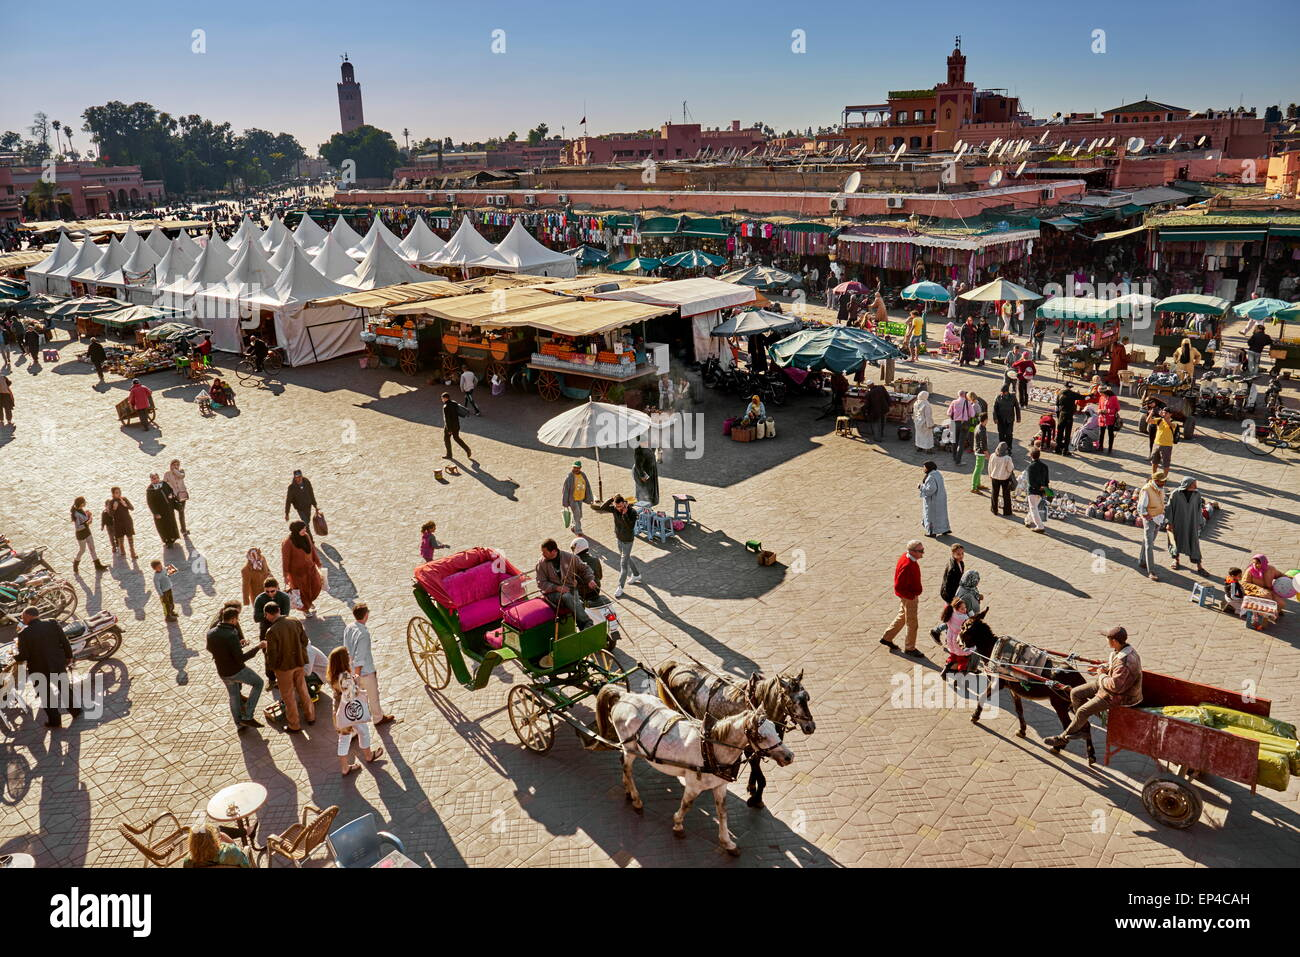 Marrakesh Medina. Jemaa el Fna Square in the early afternoon. Morocco - Stock Image